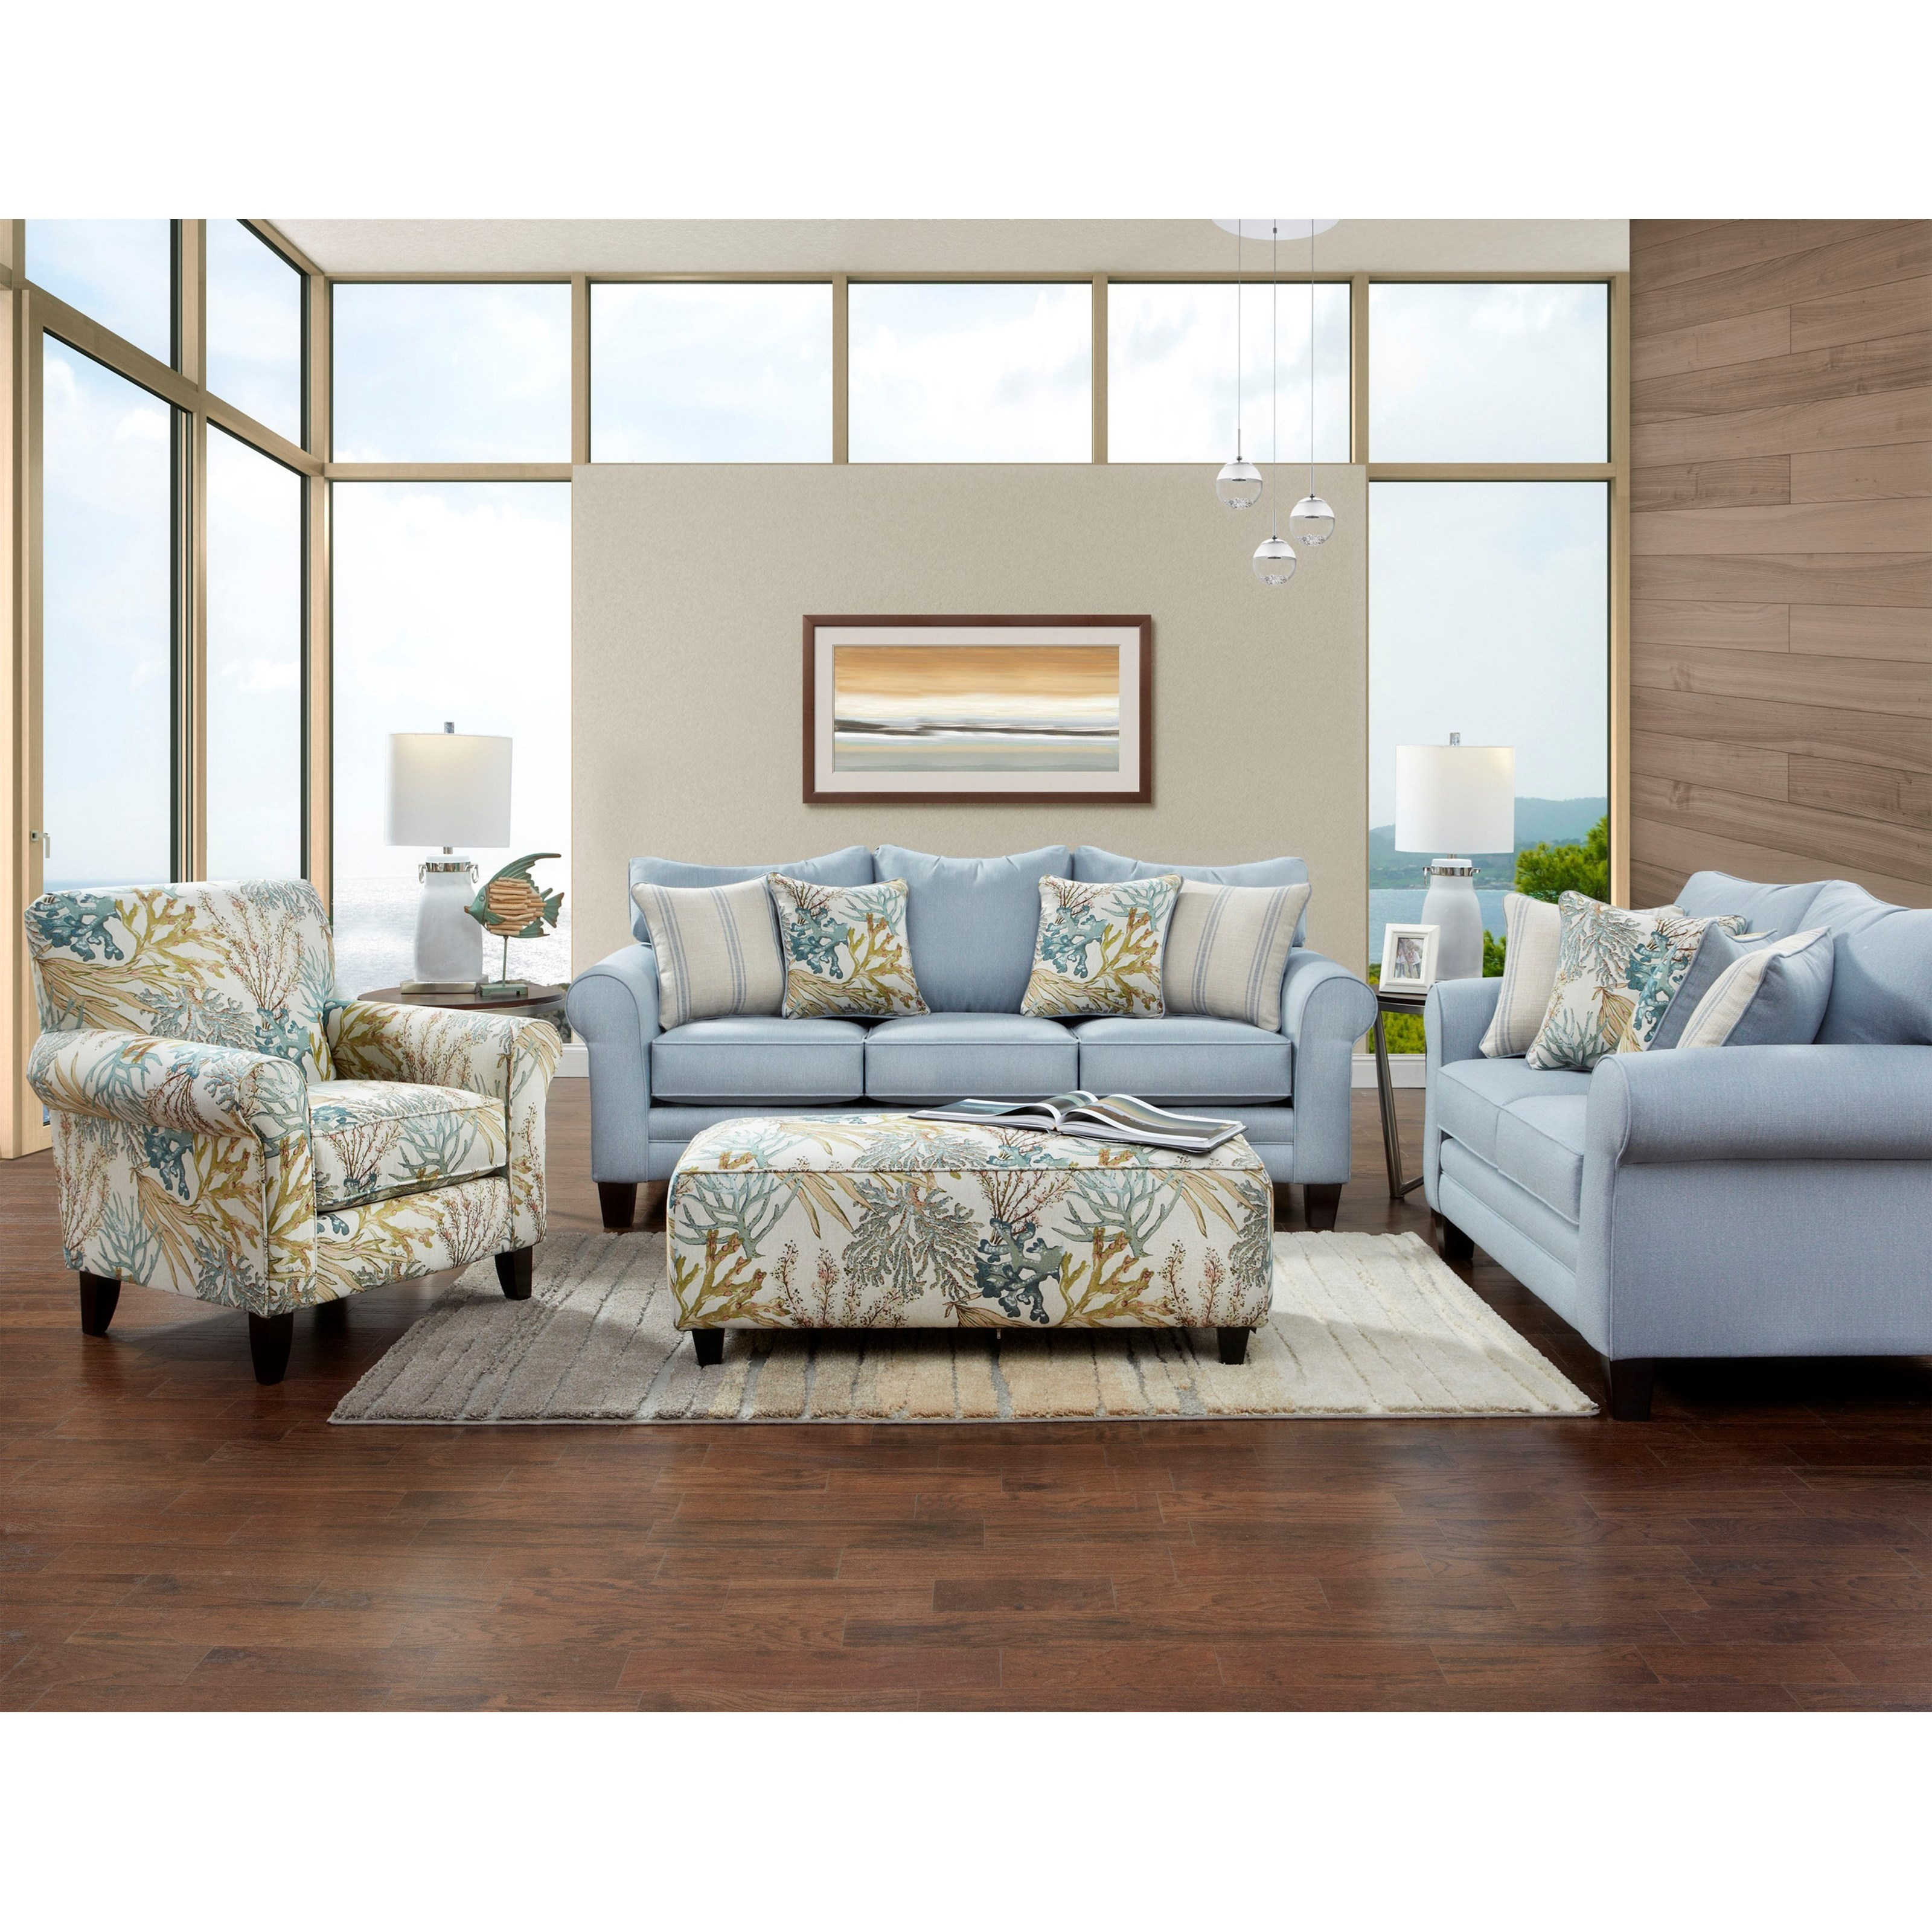 VFM Signature 1140 Stationary Living Room Group - Item Number: 1140 Living Room Group 6